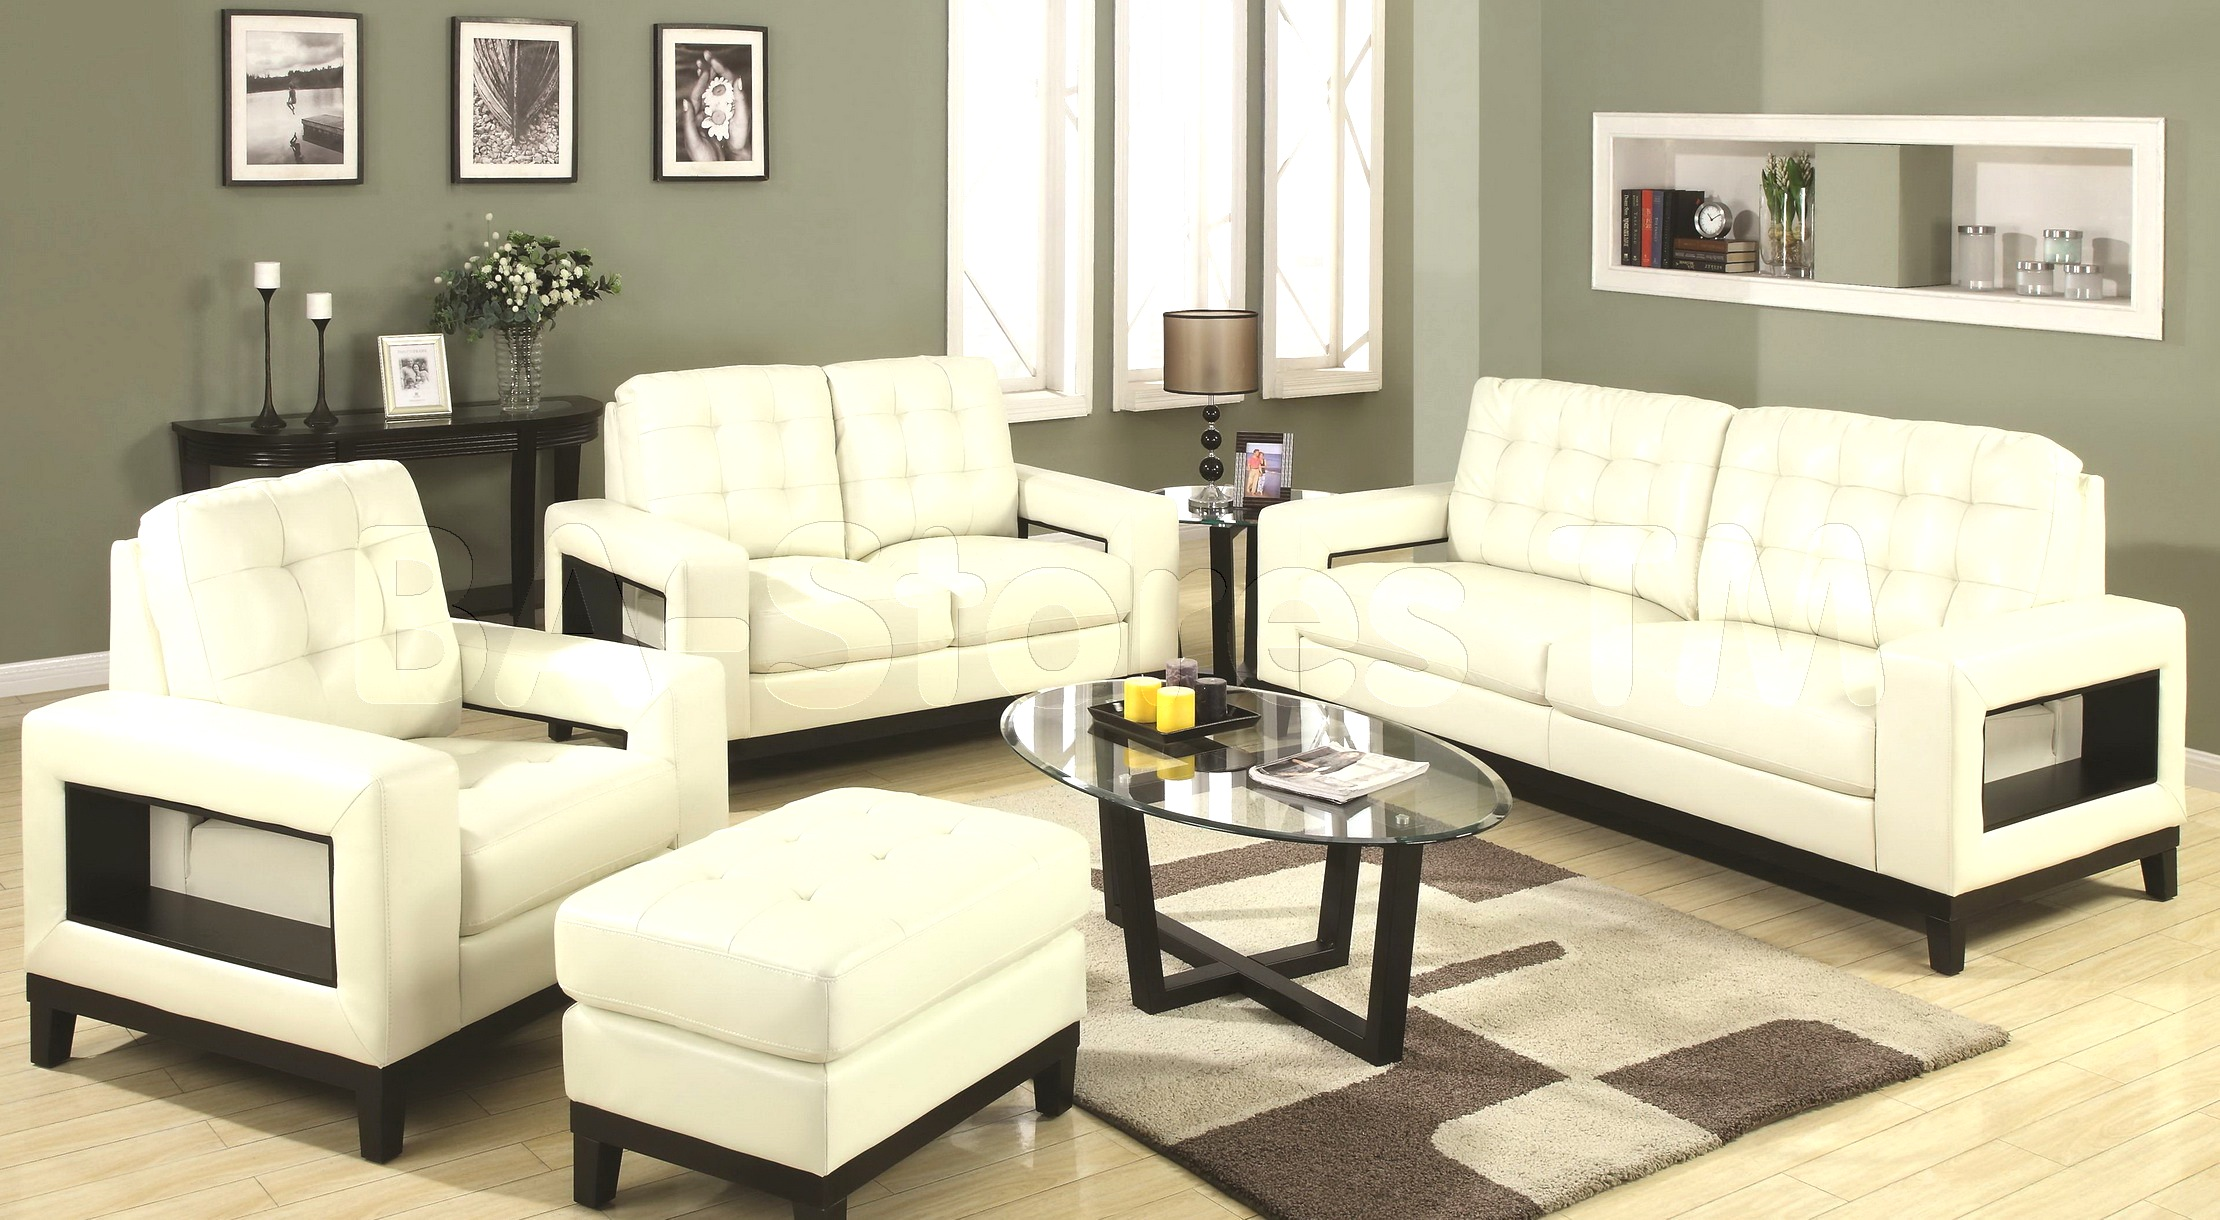 Sofa set designs home design for Sofa set for small living room